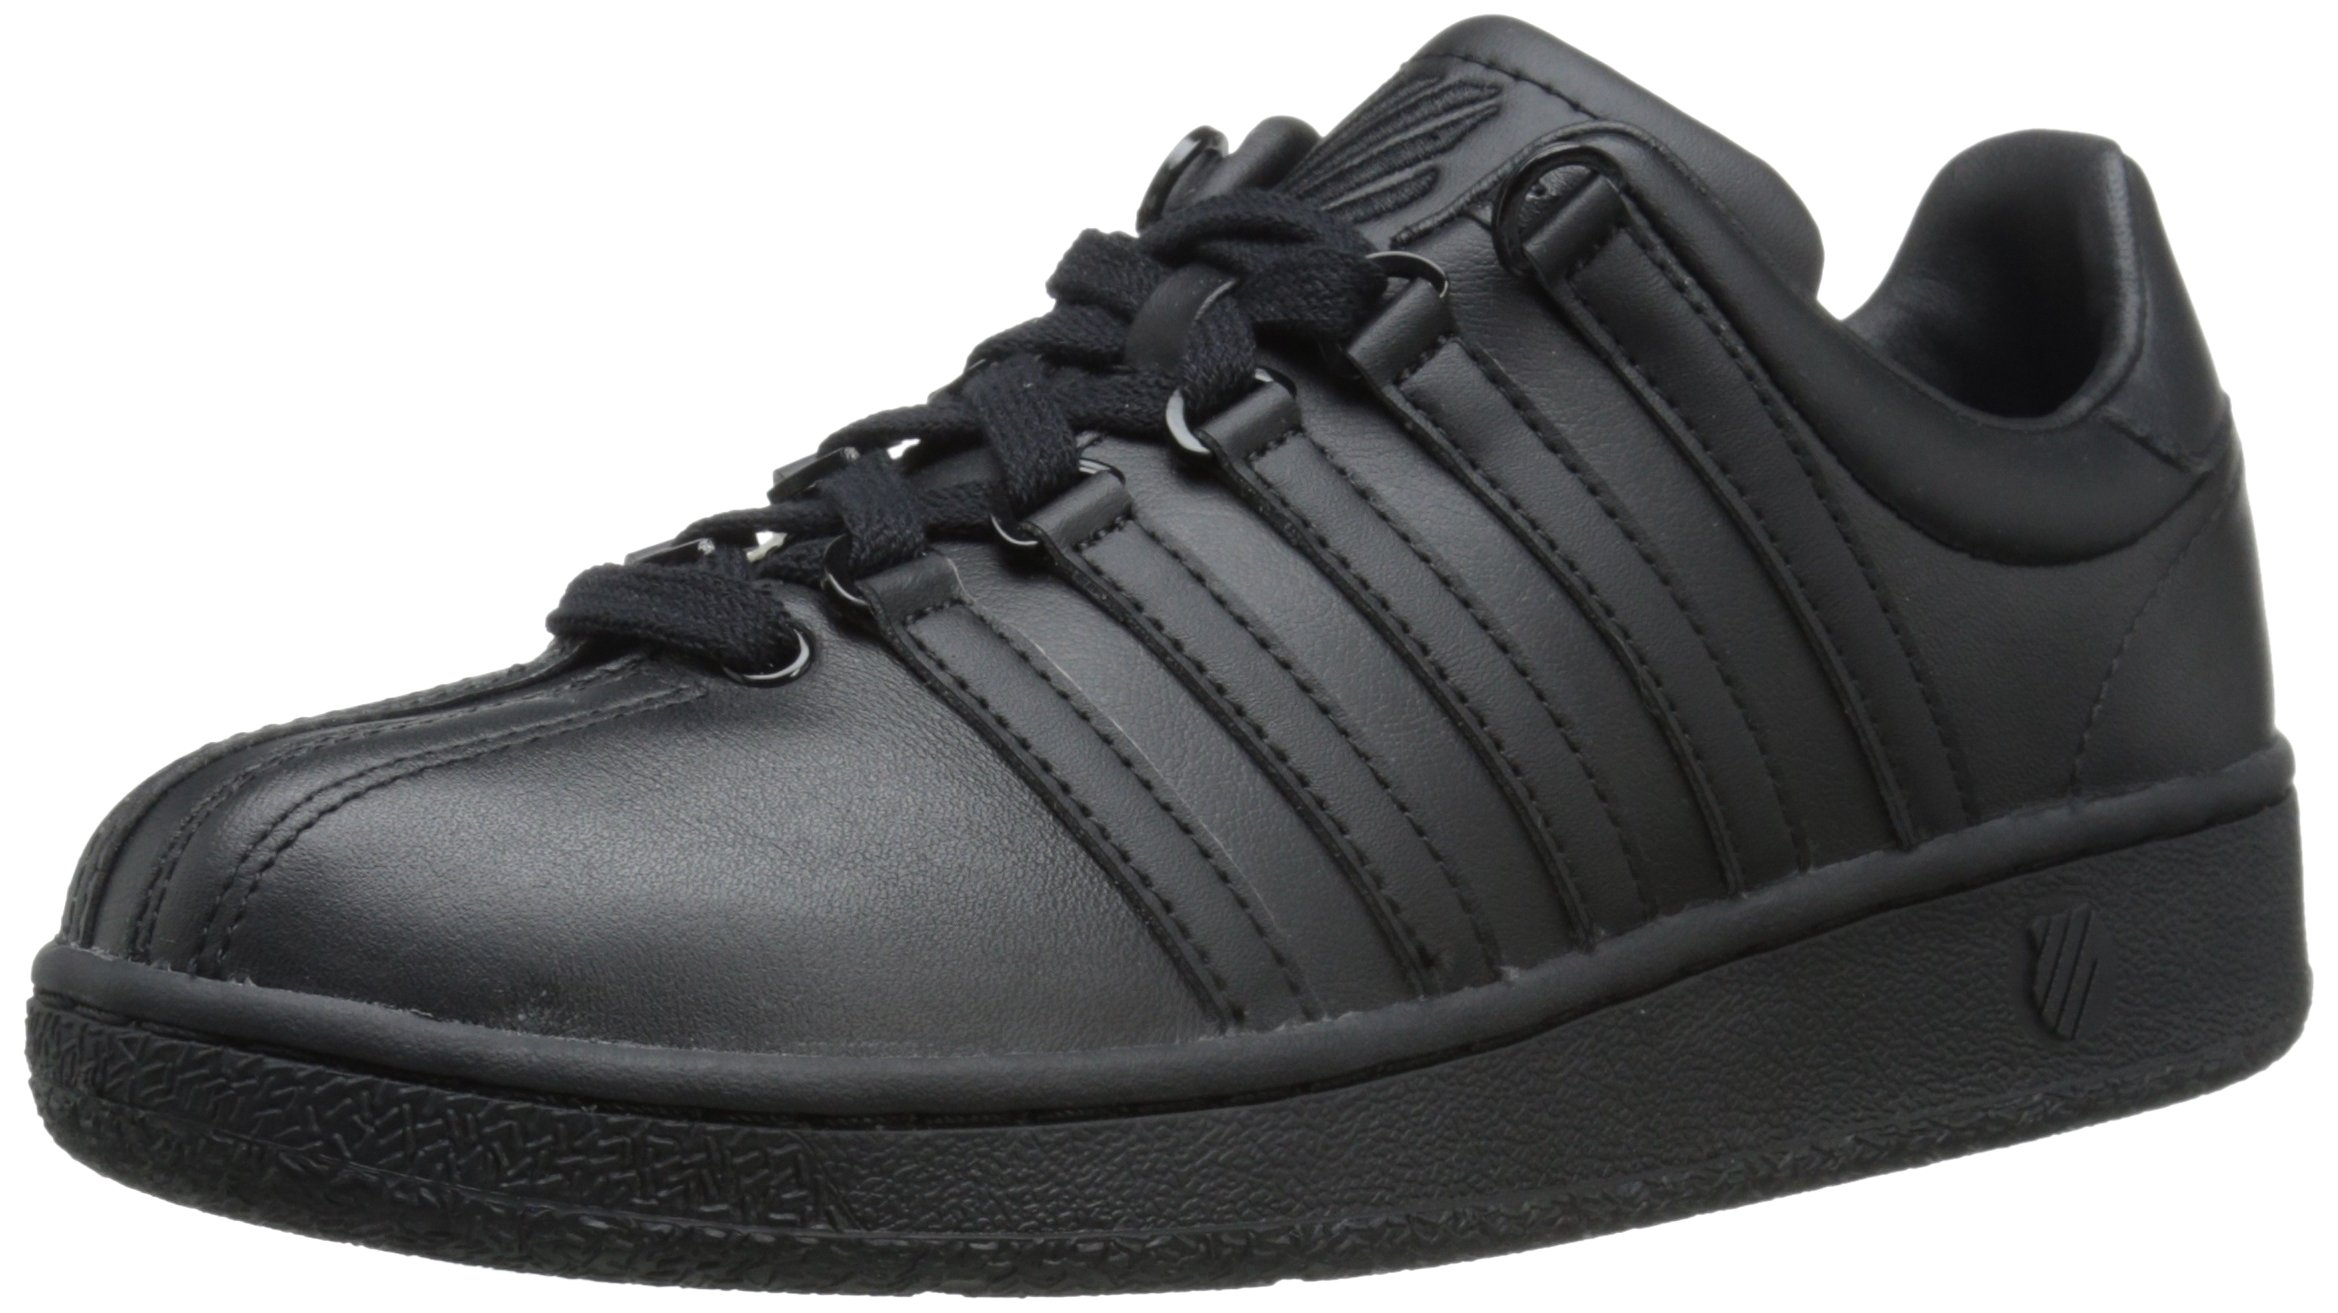 K-Swiss Women's Classic VN Fashion Sneaker, Black/Black, 8.5 M US by K-Swiss